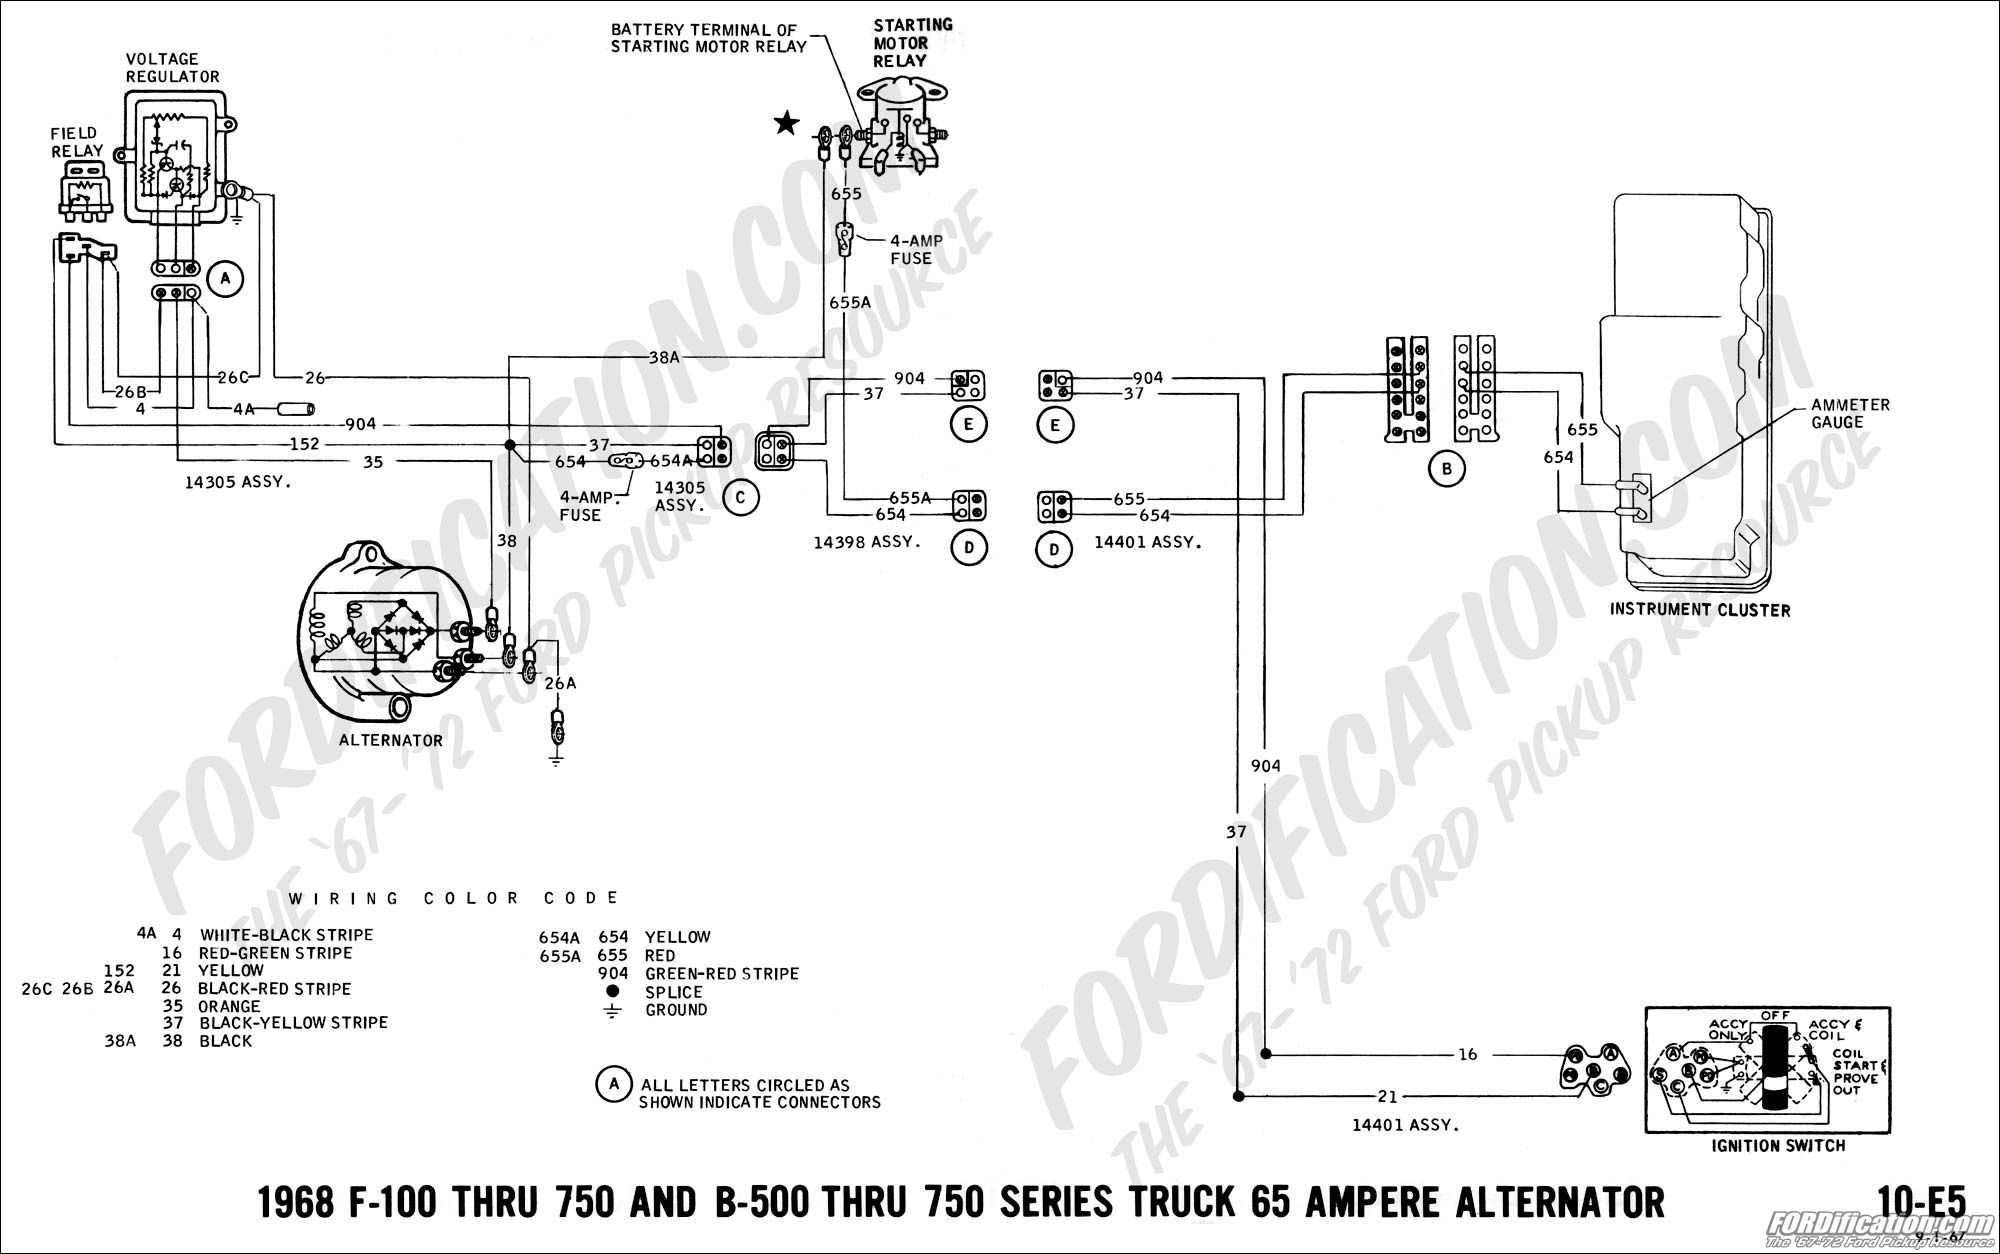 t85 1967 ford wiring diagram - 94 honda civic fuse diagram for wiring  diagram schematics  wiring diagram schematics